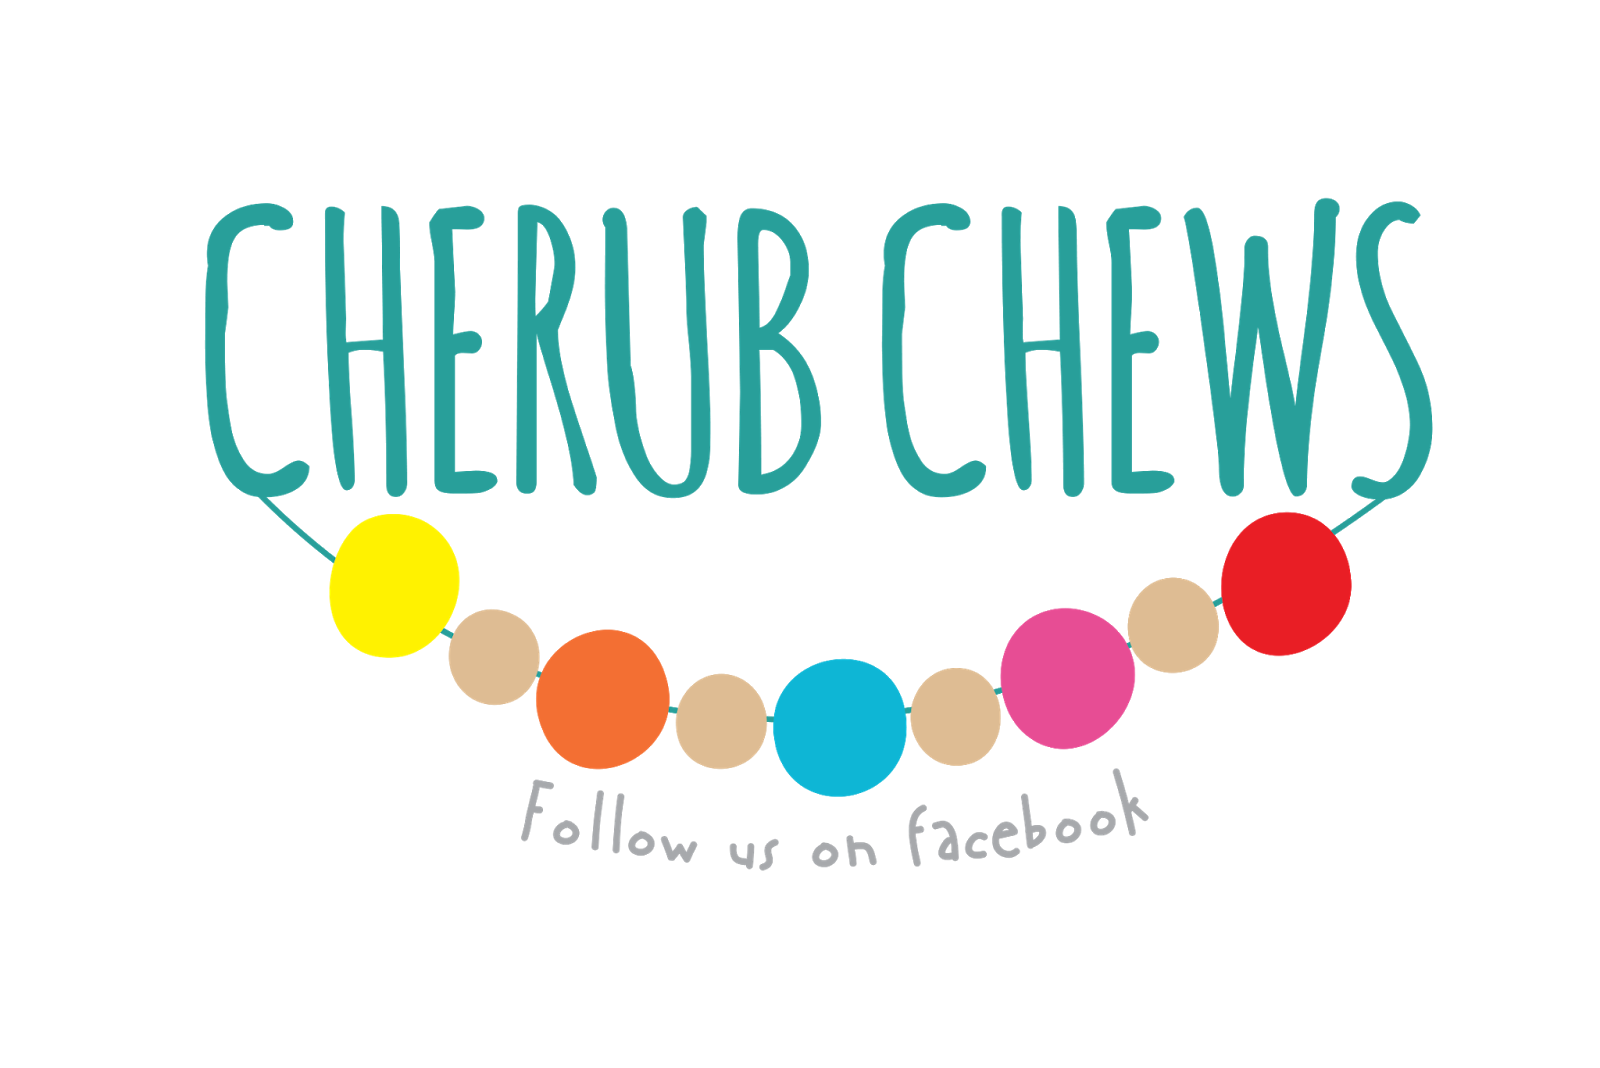 http://cherubchews.co.uk/